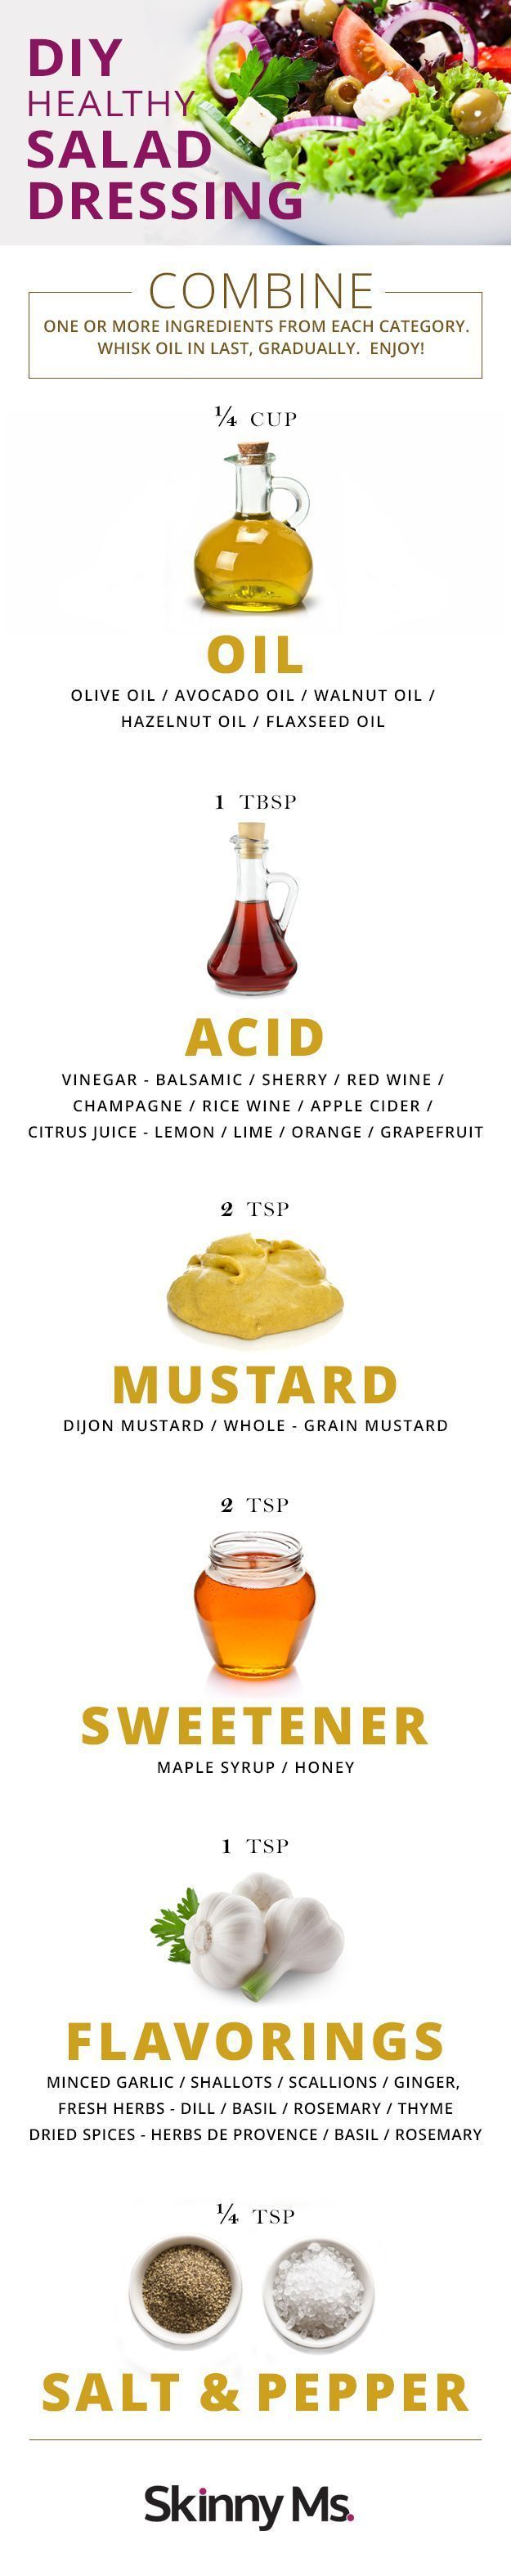 This  handy DIY Healthy Salad Dressing chart is so helpful. You'll be able to make a dressing and get creative with the flavors. #diysaladdressing #saladdressing #vinaigrette